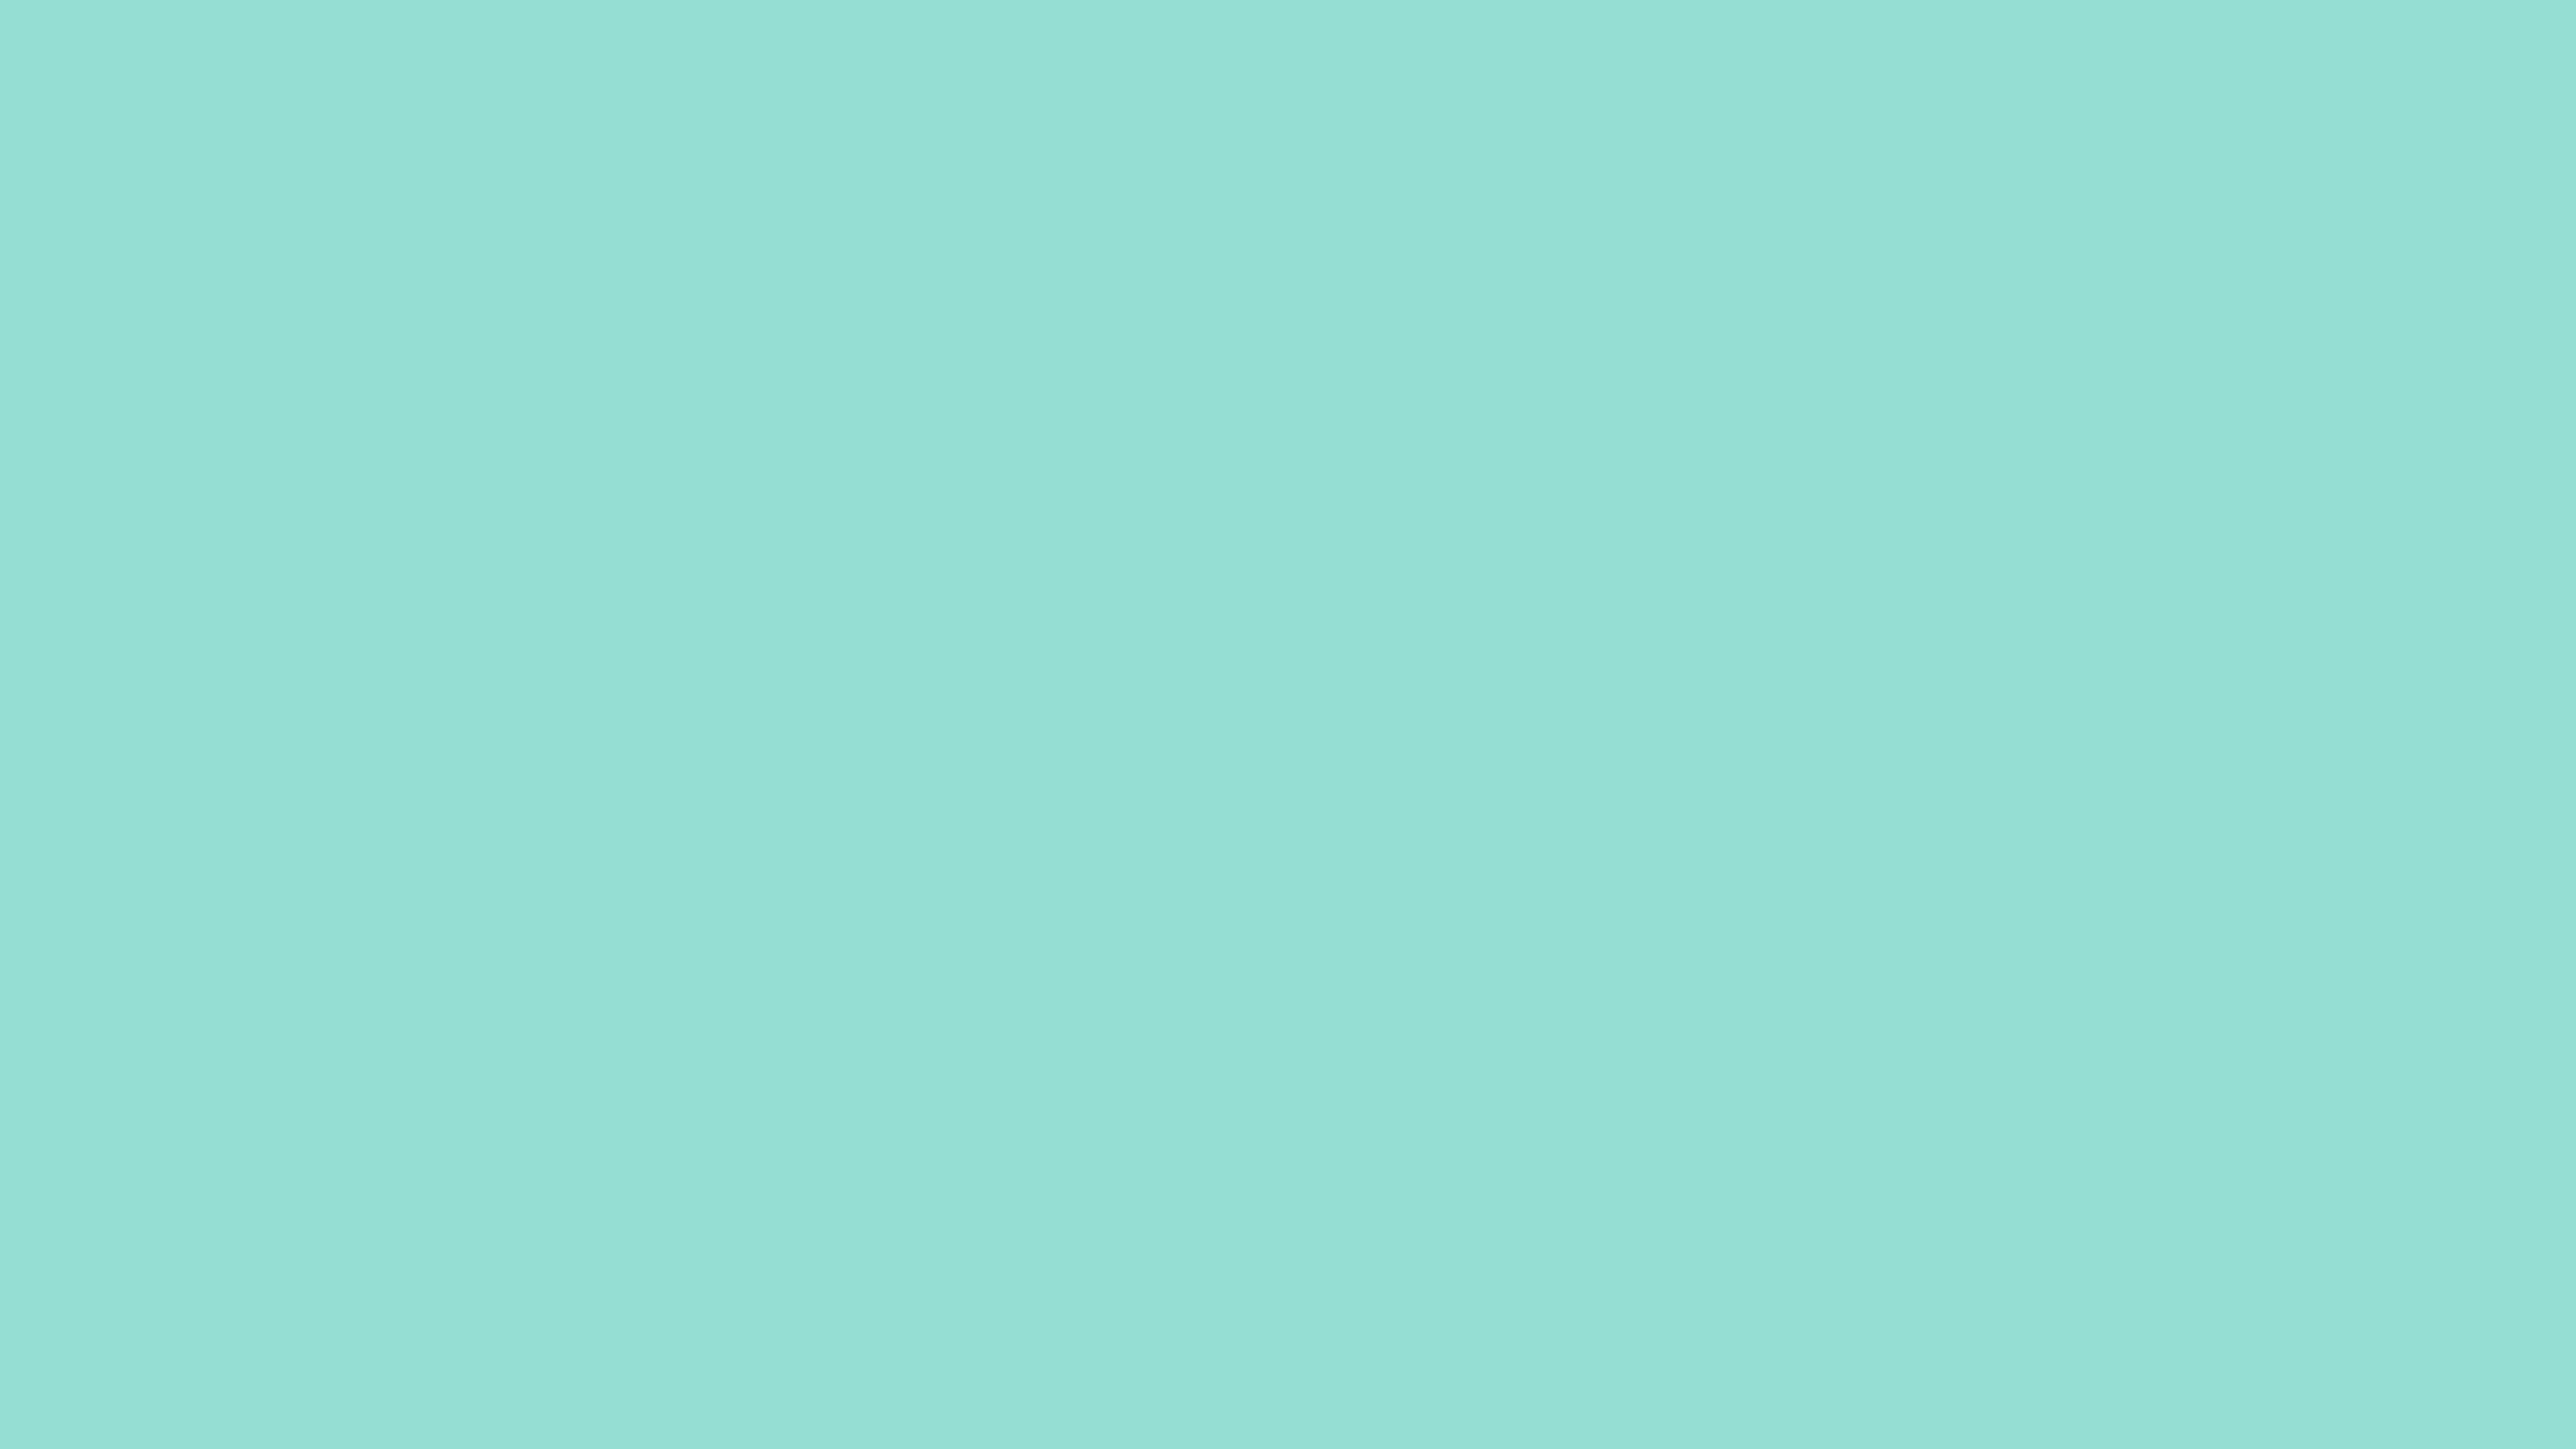 3840x2160 Pale Robin Egg Blue Solid Color Background